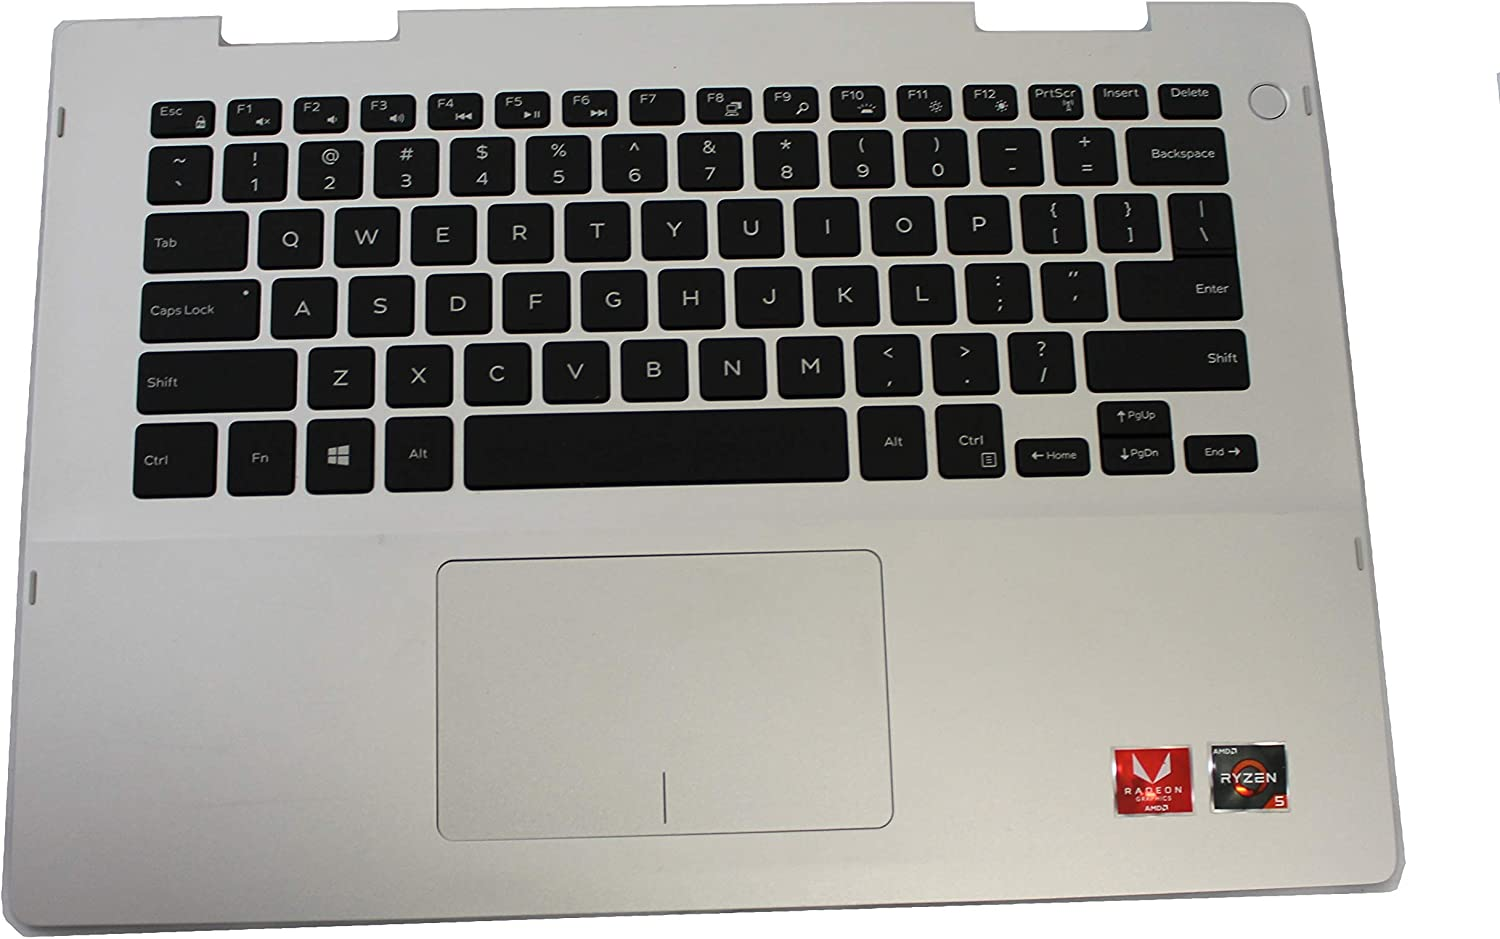 41KVJ Dell Inspiron 5485 Genuine Palmrest with Keyboard and Touchpad (Renewed)